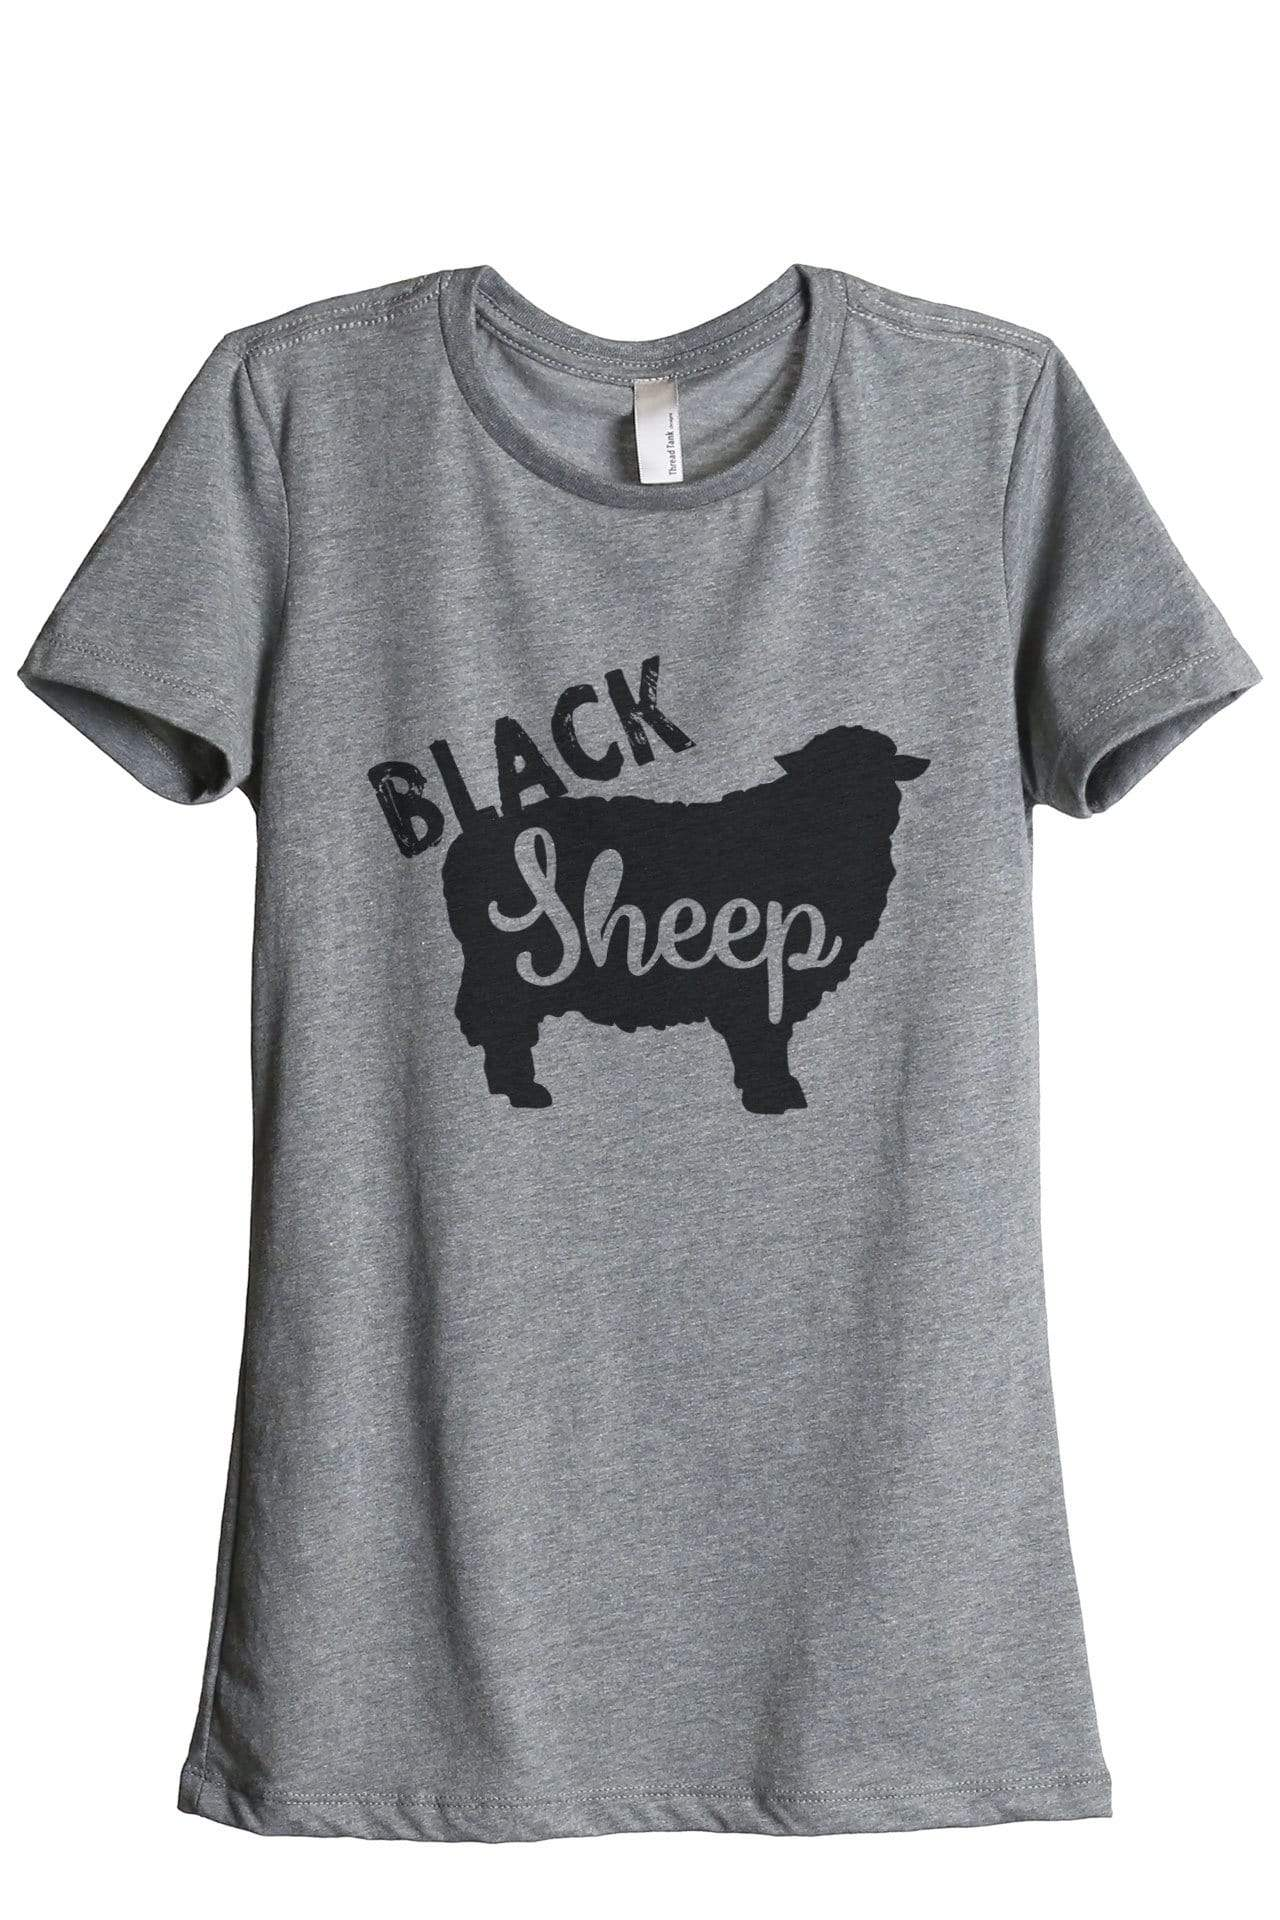 Black Sheep - Thread Tank | Stories You Can Wear | T-Shirts, Tank Tops and Sweatshirts